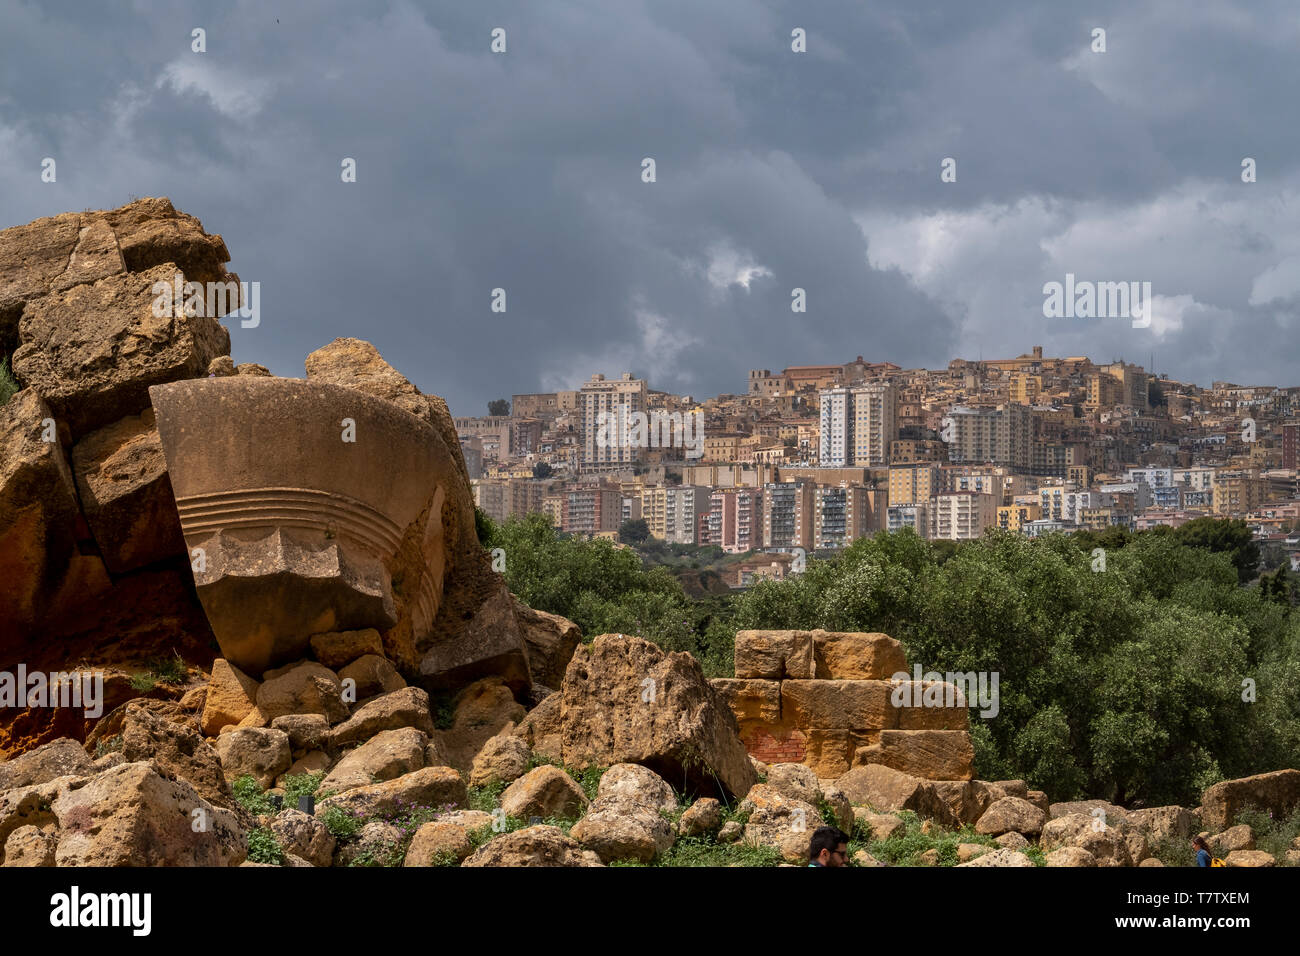 The temple of Olympian Zeus, in the valley of the Temples, in the ancient Acragas, Sicily with the modern city of Agrigentoin the distance. - Stock Image